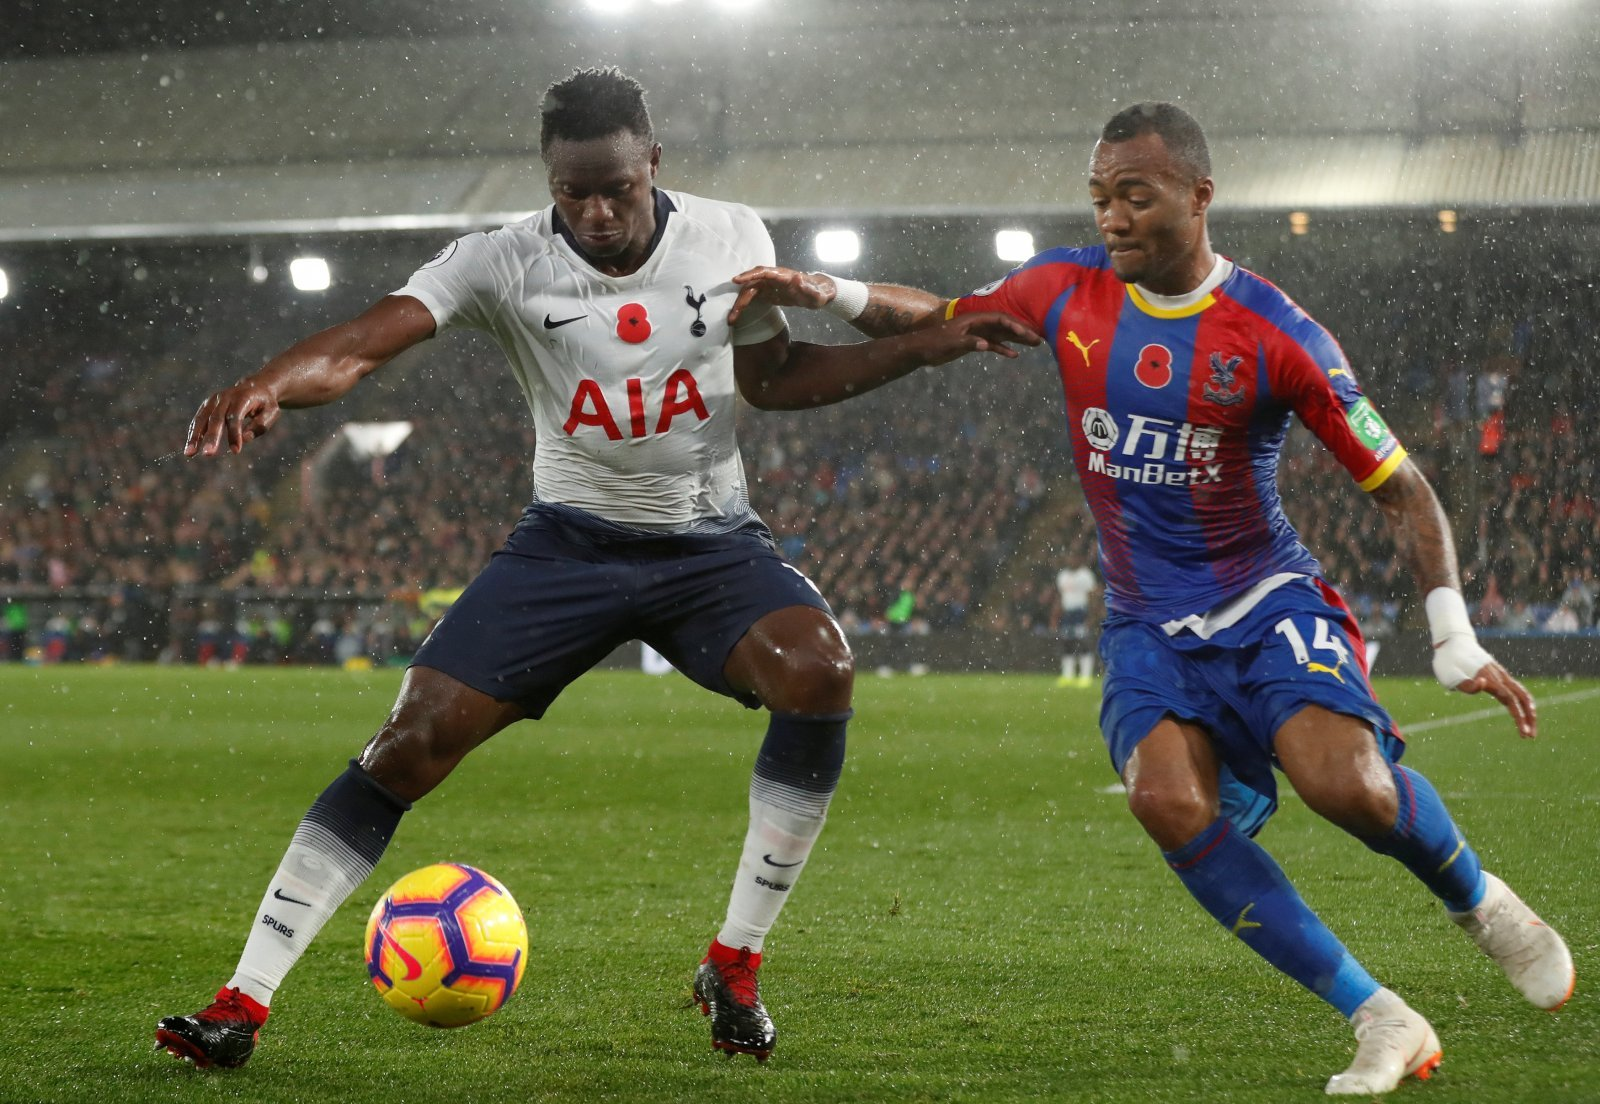 Tottenham Hotspur: West Ham interest in Wanyama gives club opportunity to move him on